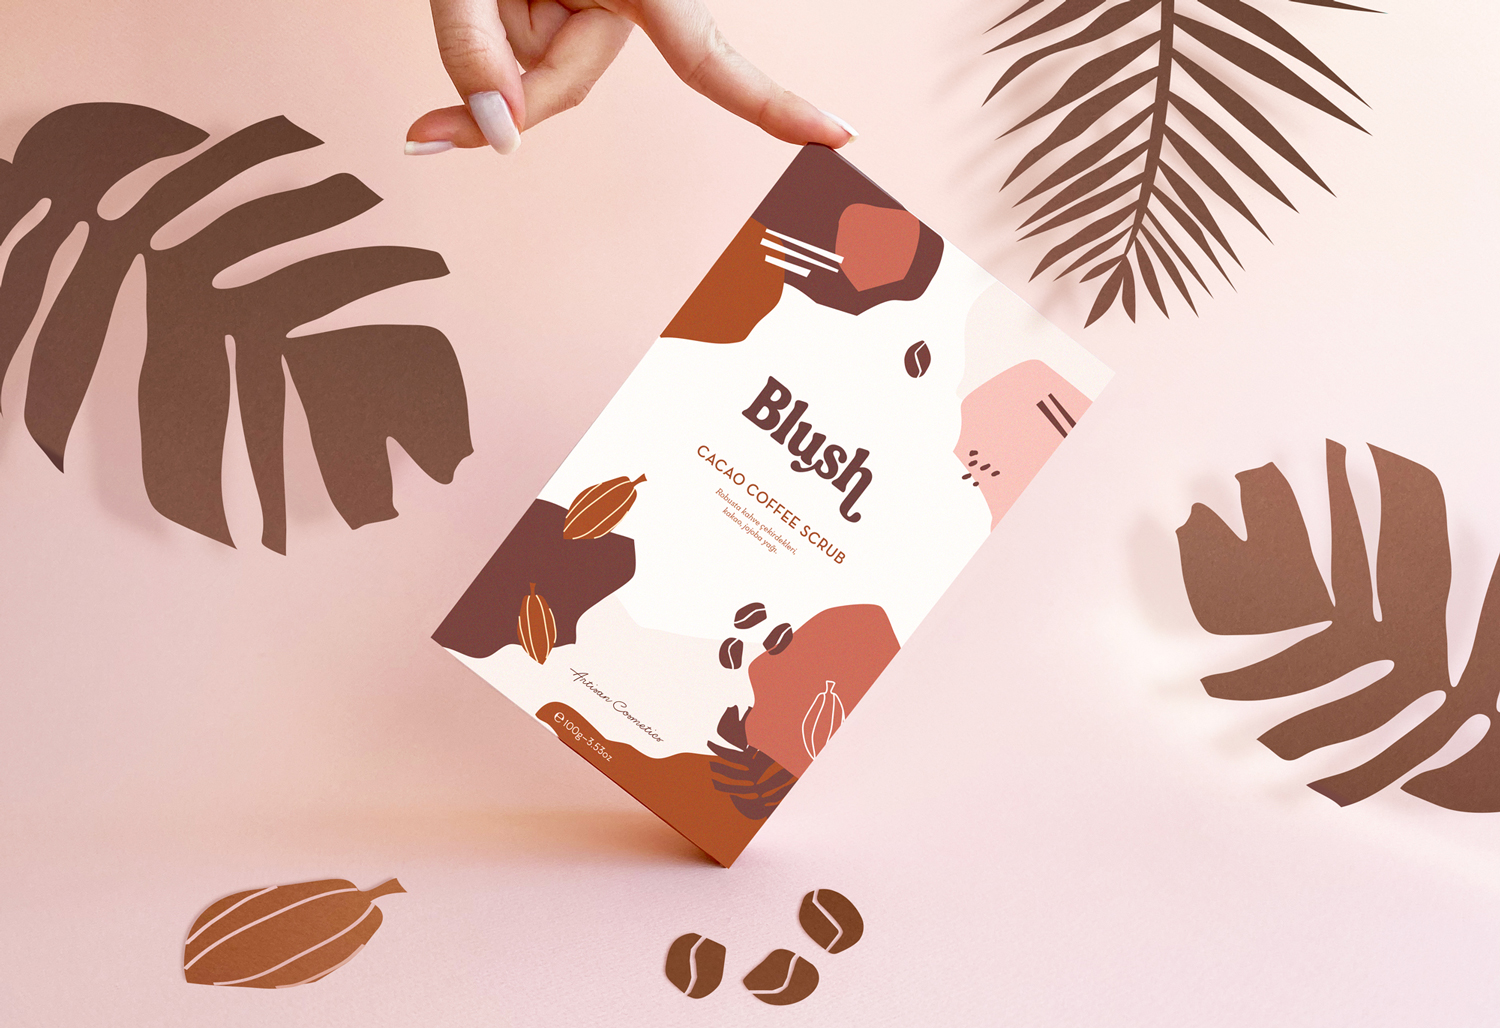 Branding and Packaging for Blush Cosmetics